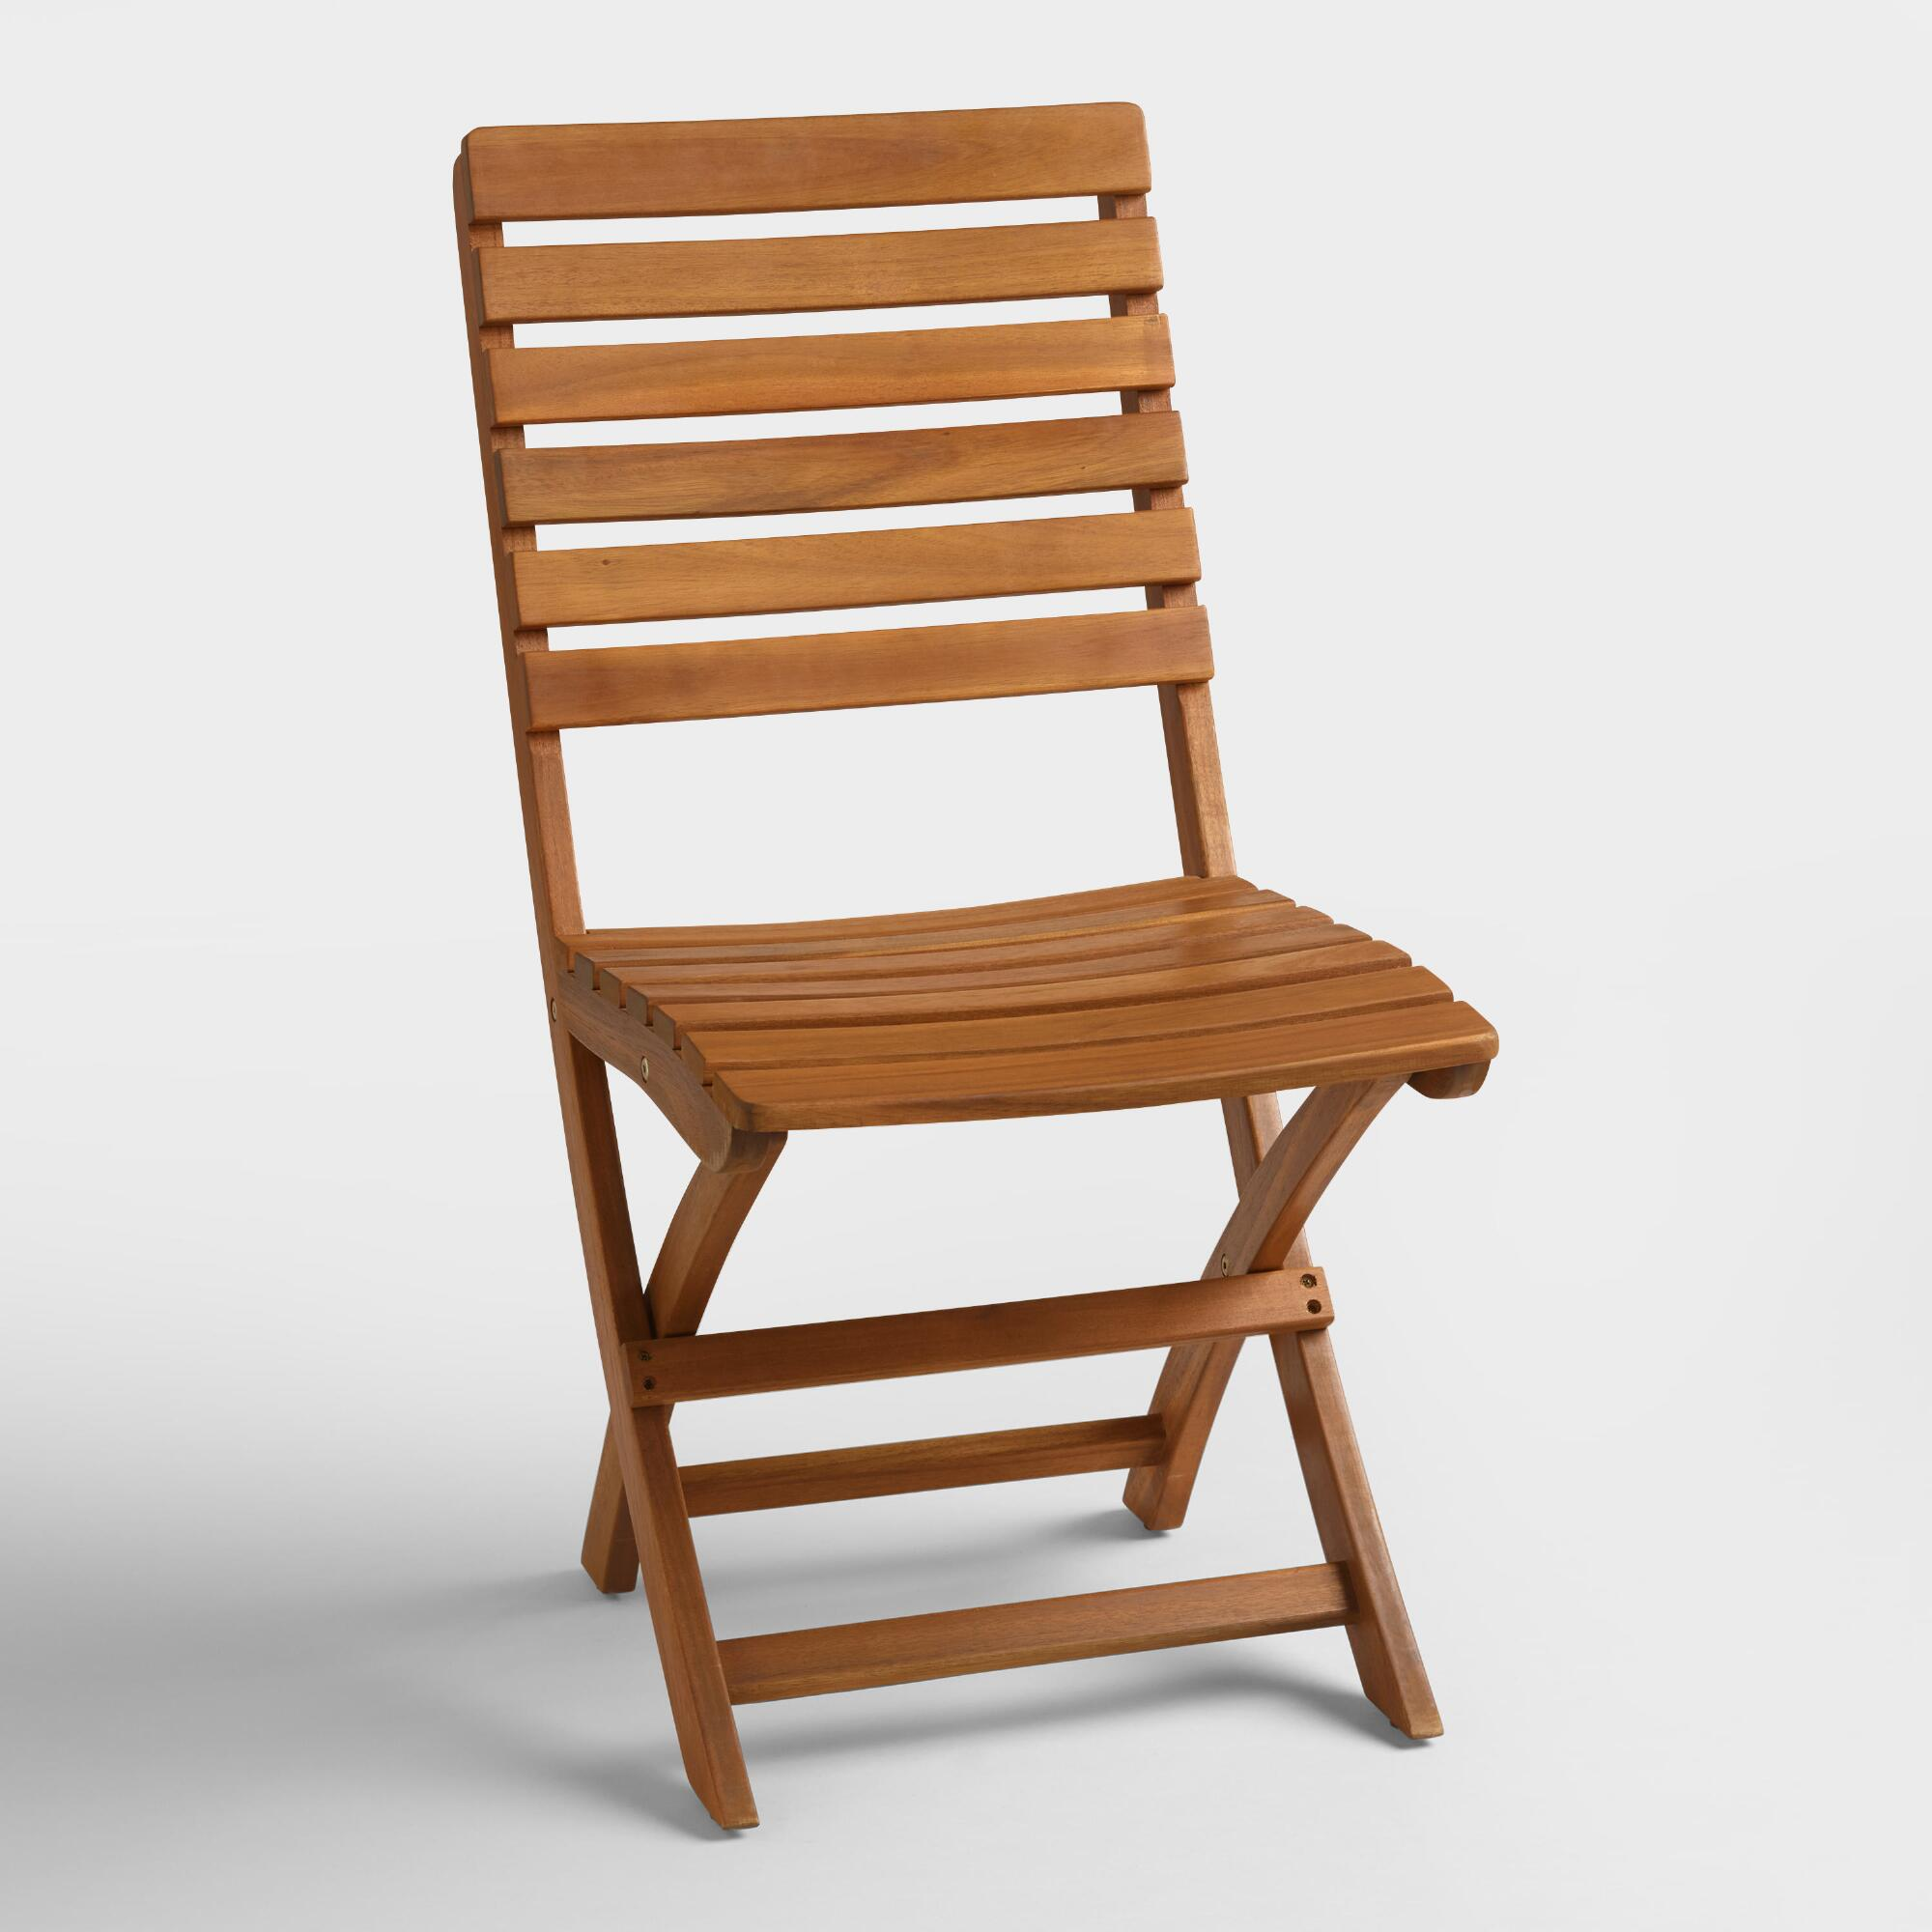 Wood folding chair outdoor - Wood Folding Chair Outdoor 57